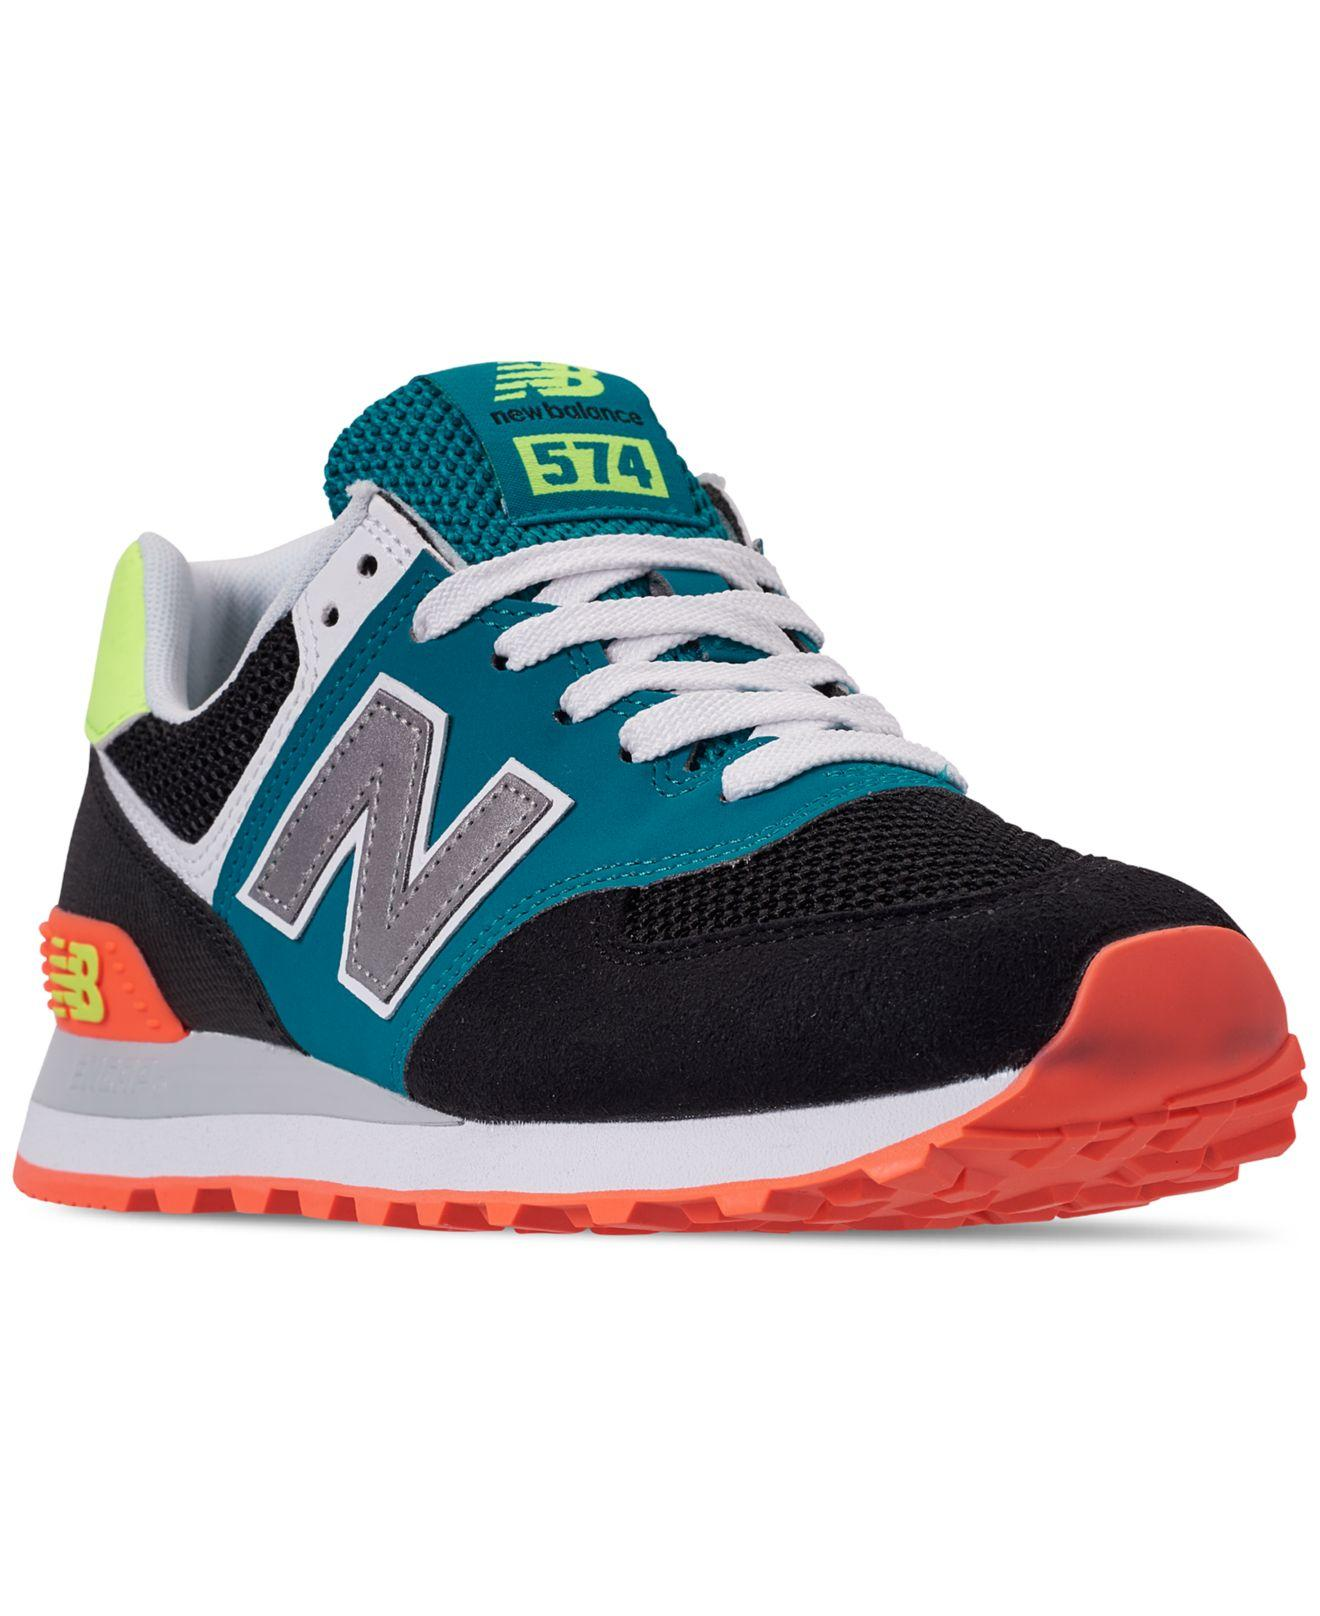 3d8f31f338582 New Balance - Multicolor 574 Casual Sneakers From Finish Line - Lyst. View  fullscreen